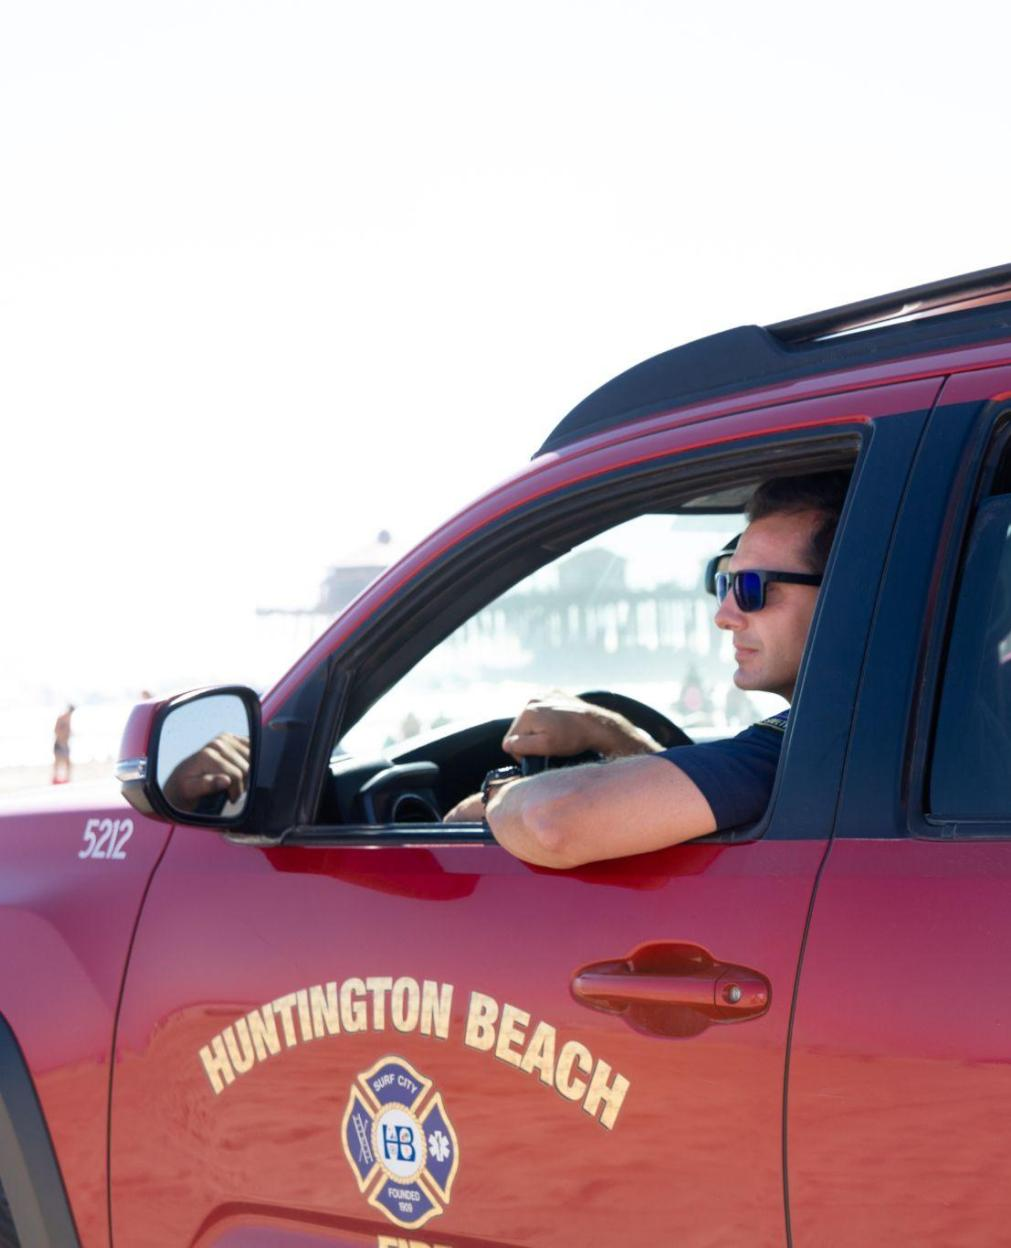 Huntington Beach Lifeguard in Truck Guarding the Water